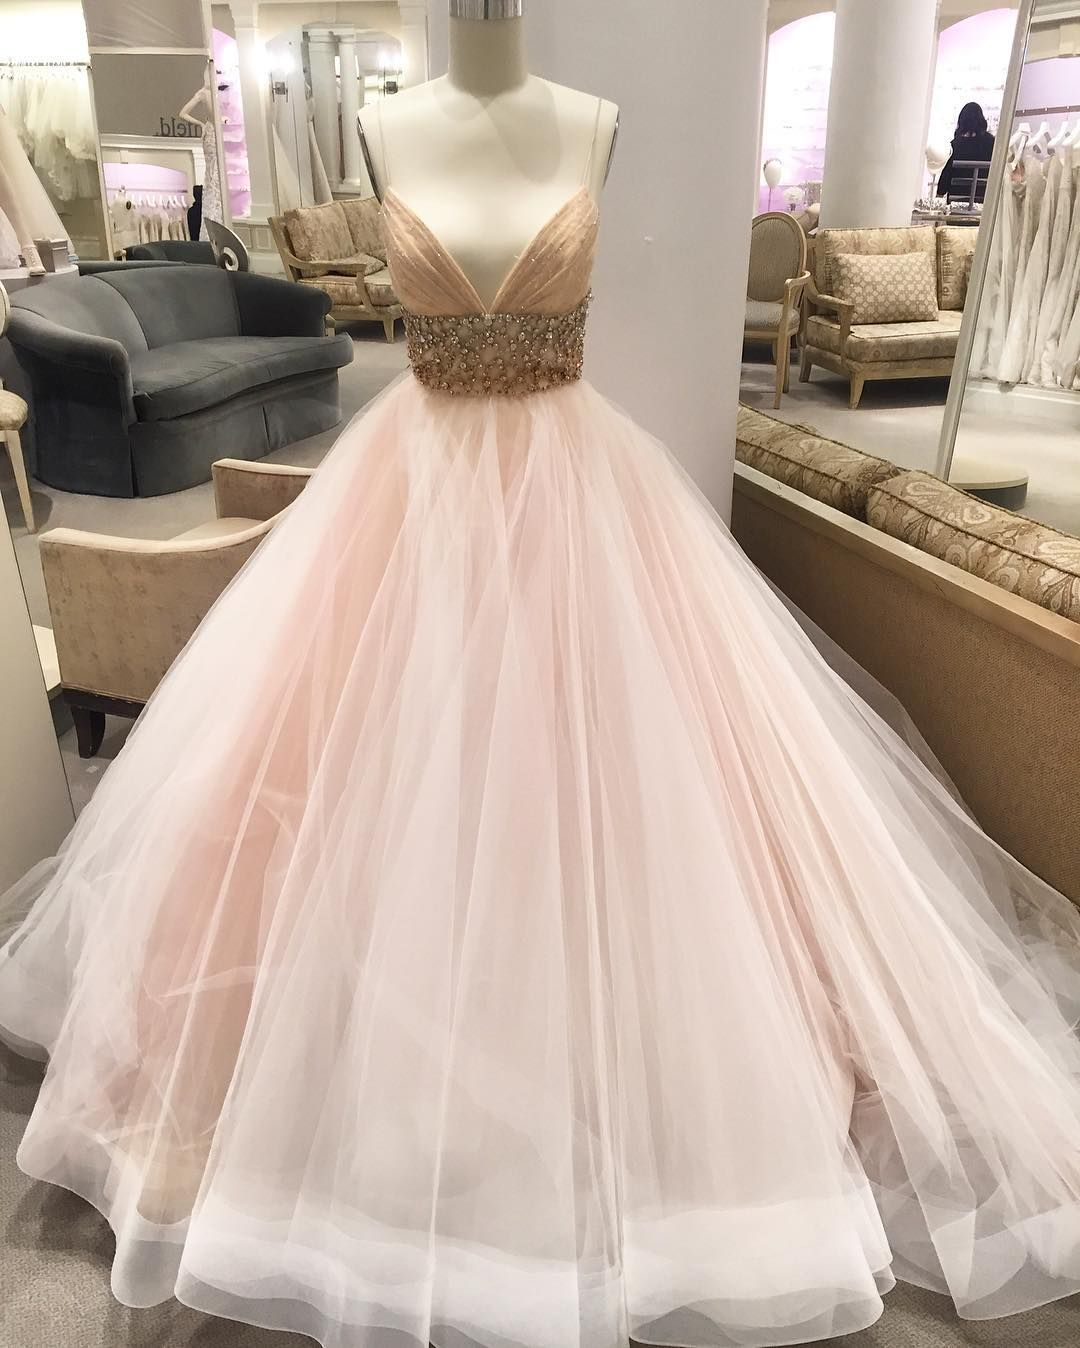 Home of syttd u the largest selection of wedding dresses in the us